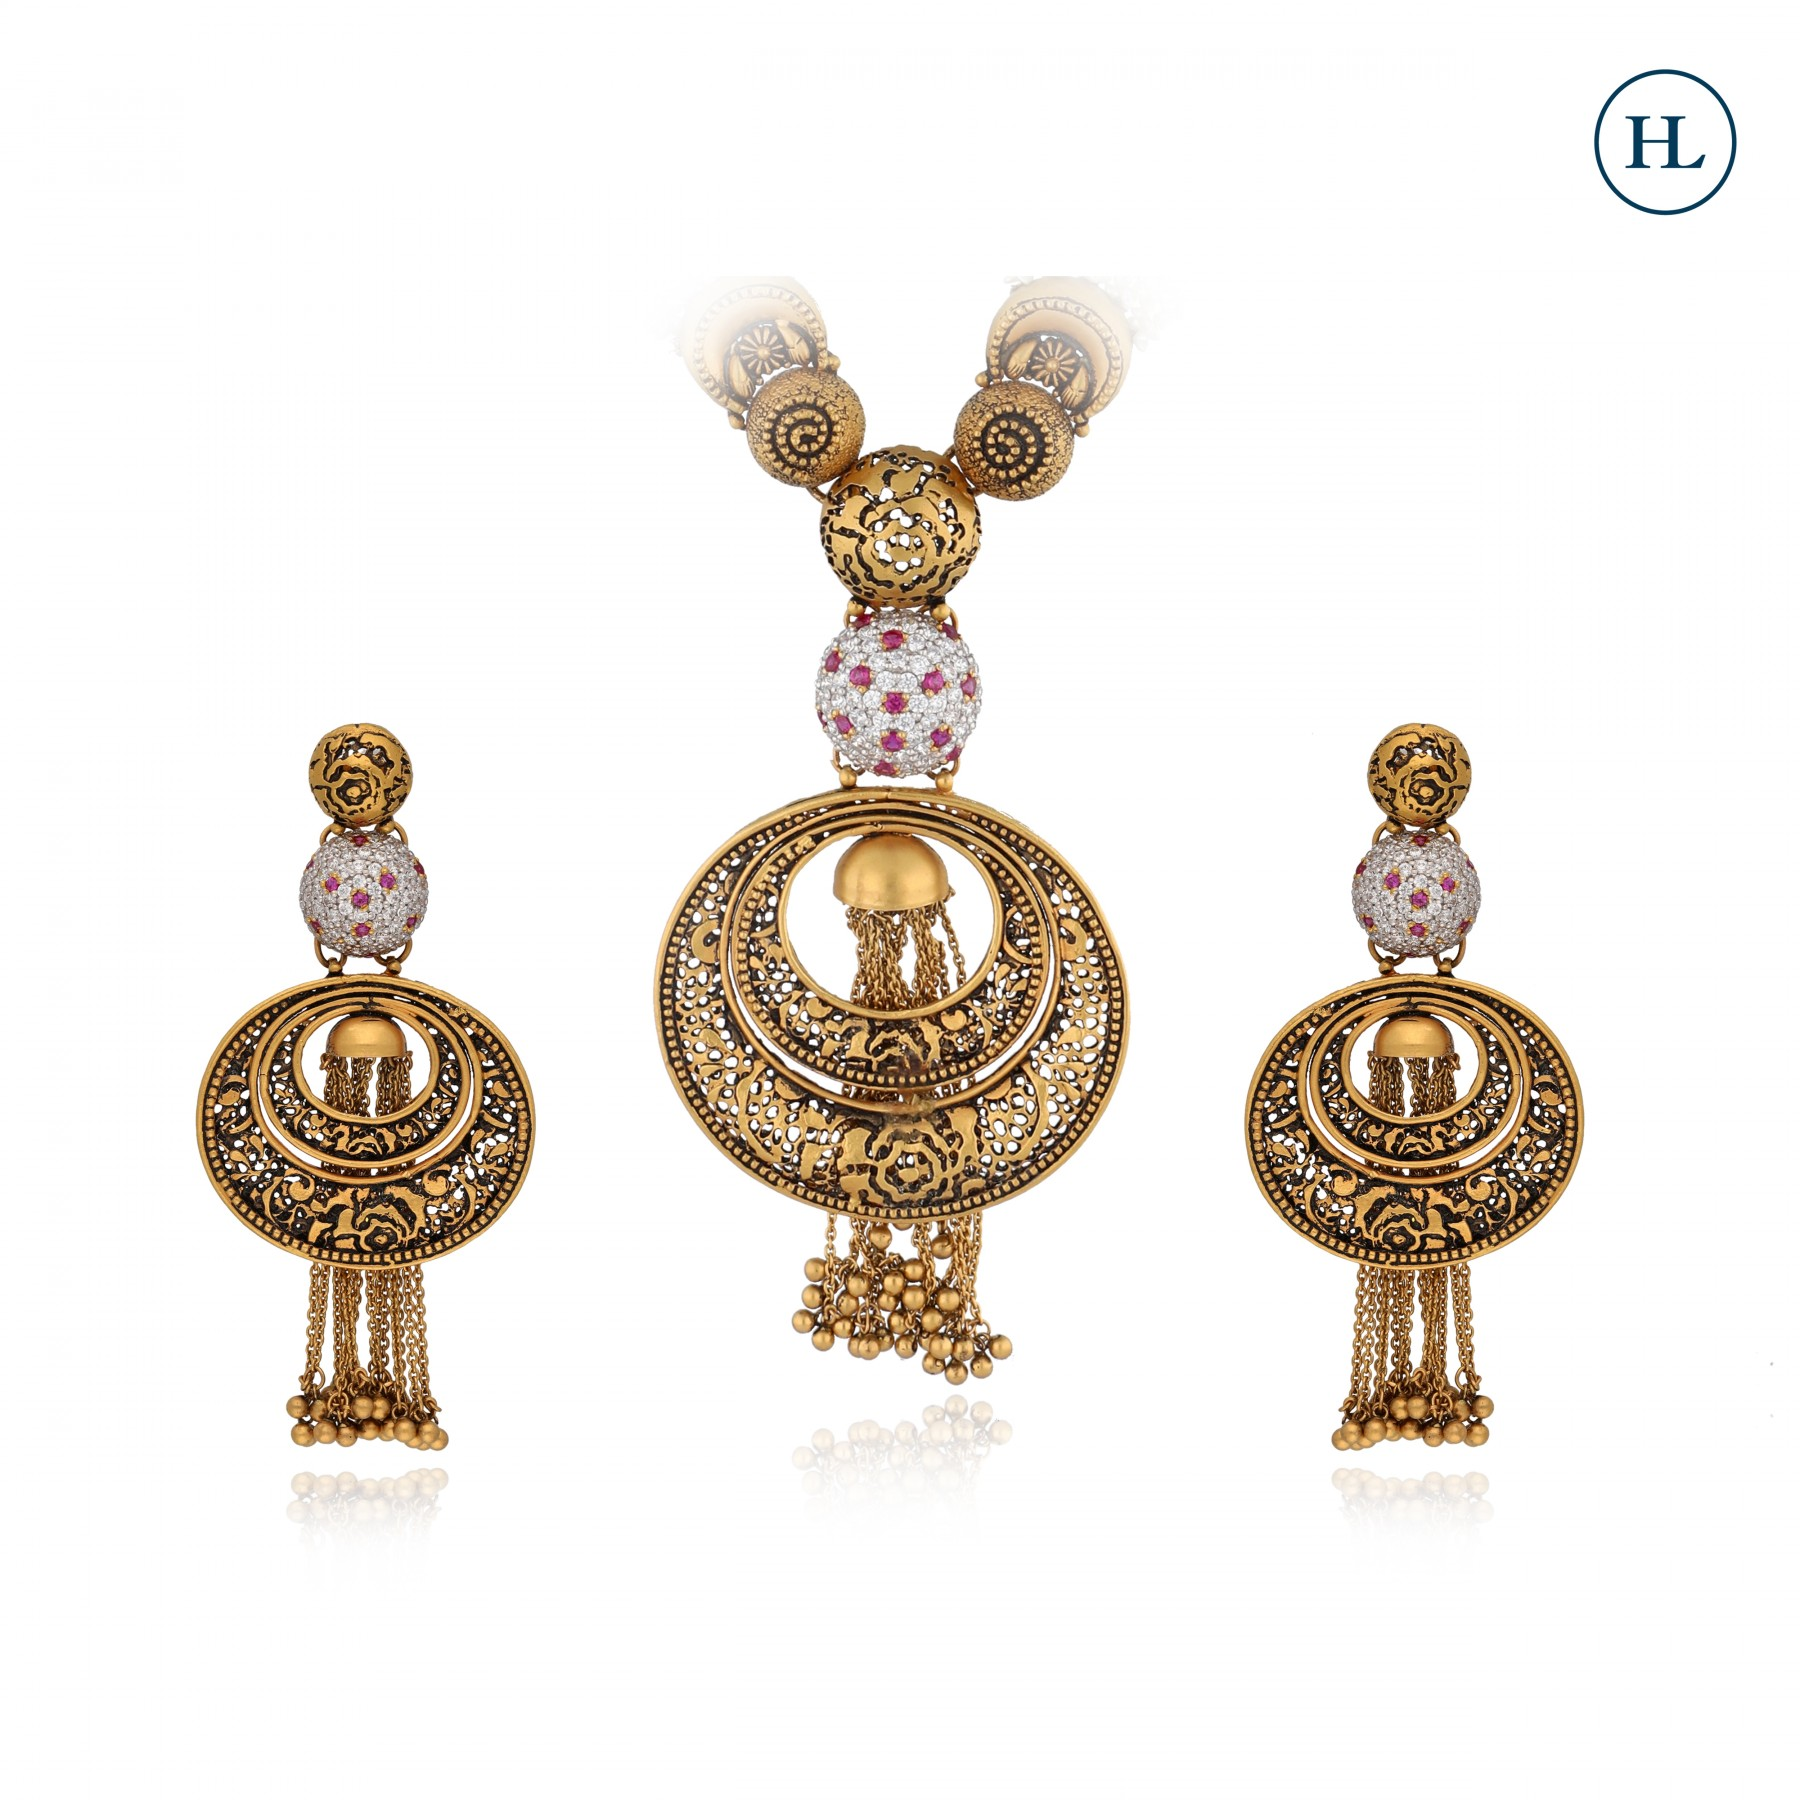 Antique-Styled Gold Pendant Set